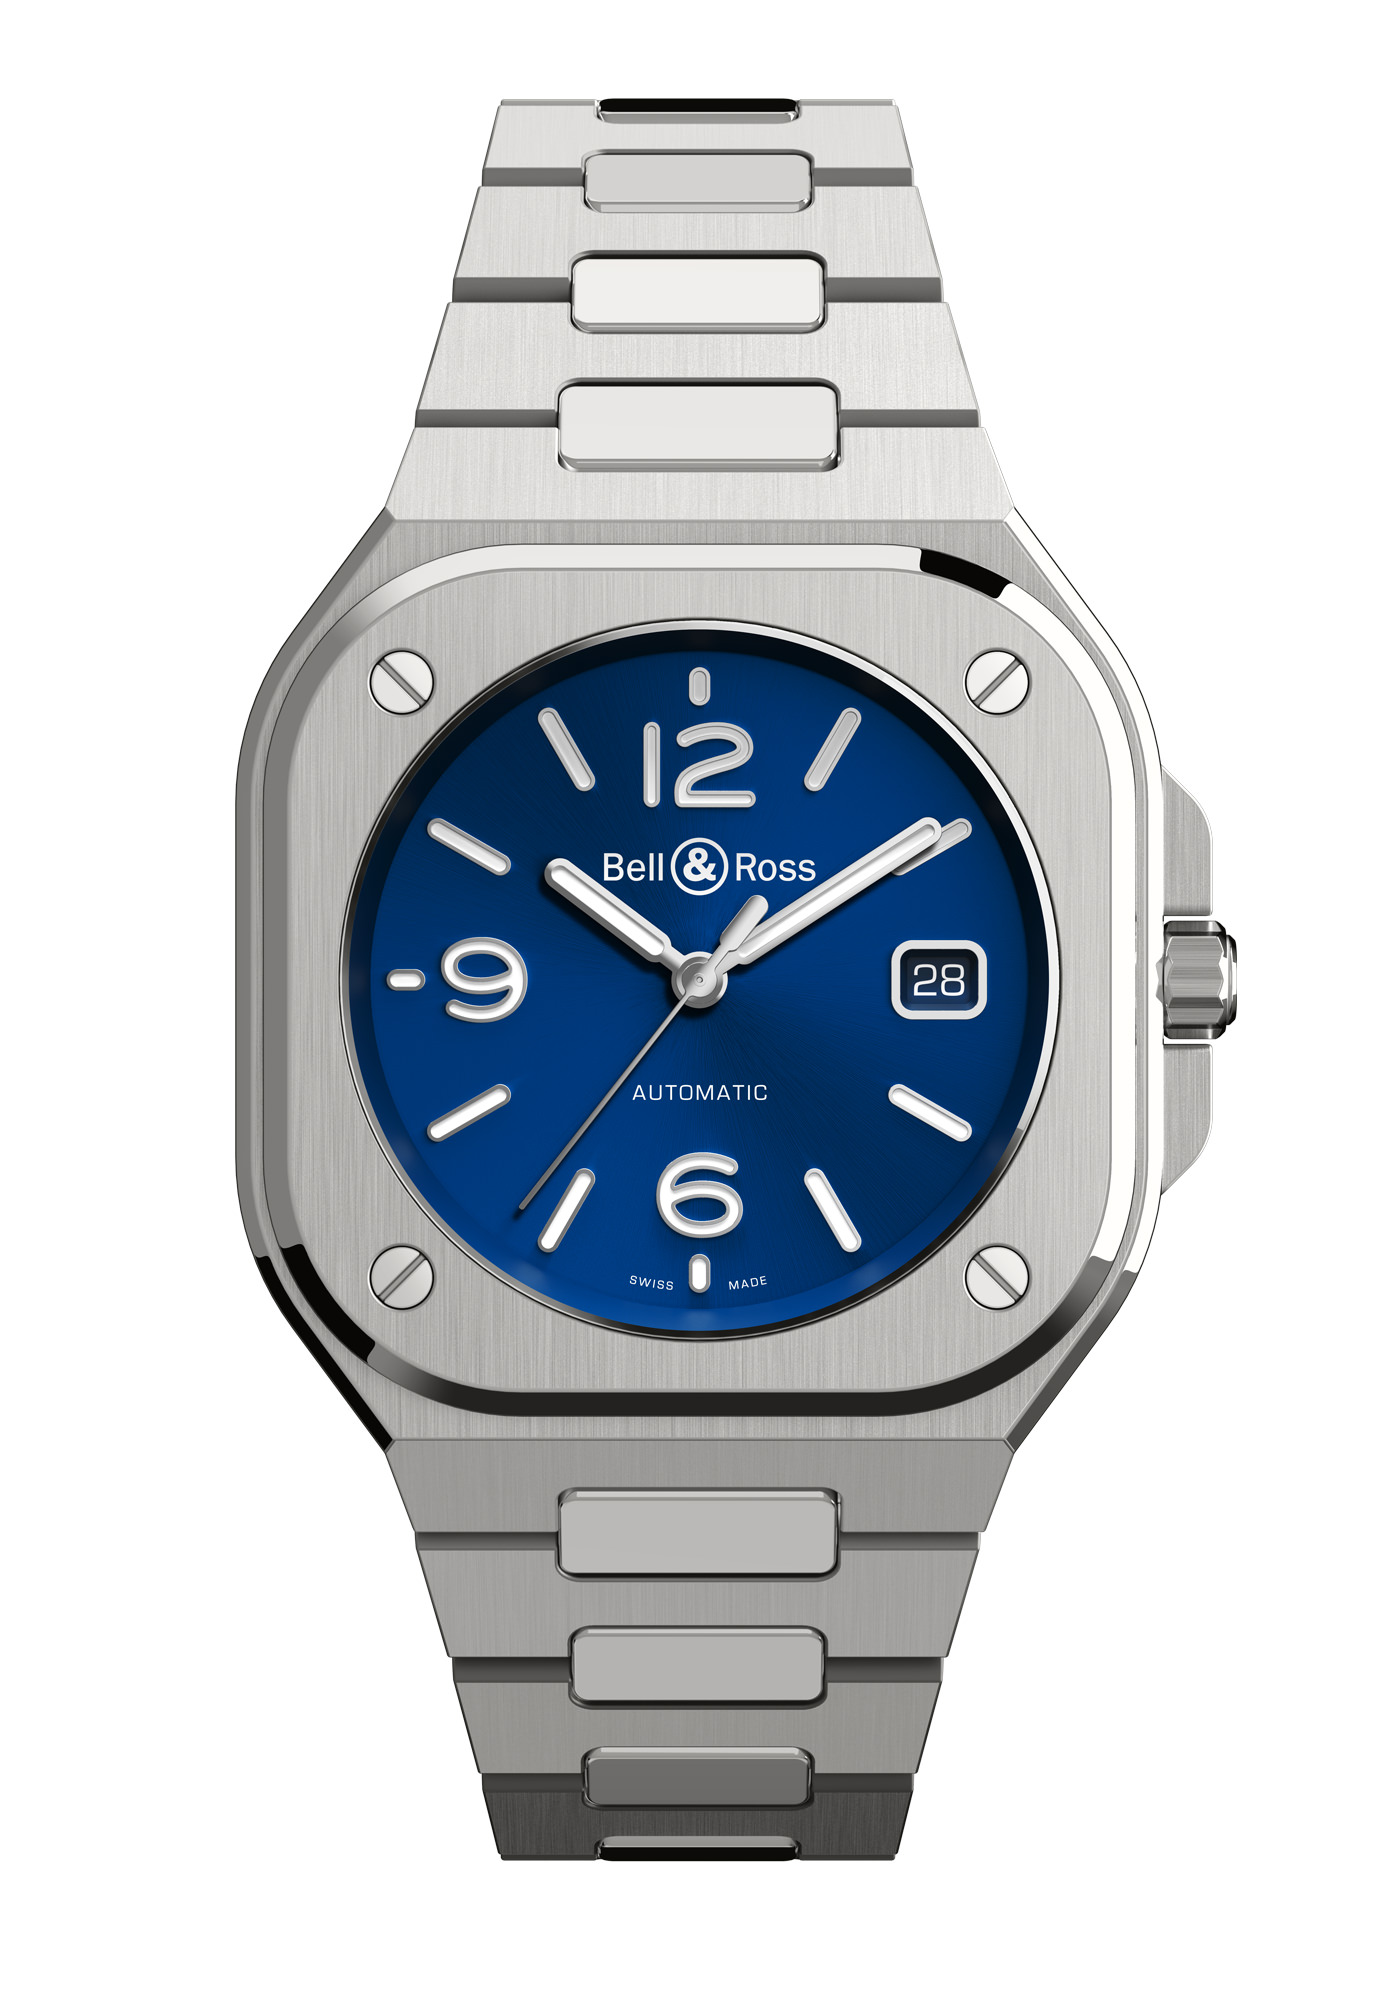 Montre Bell & Ross Nouvelle Collection BR05 Bleue Acier